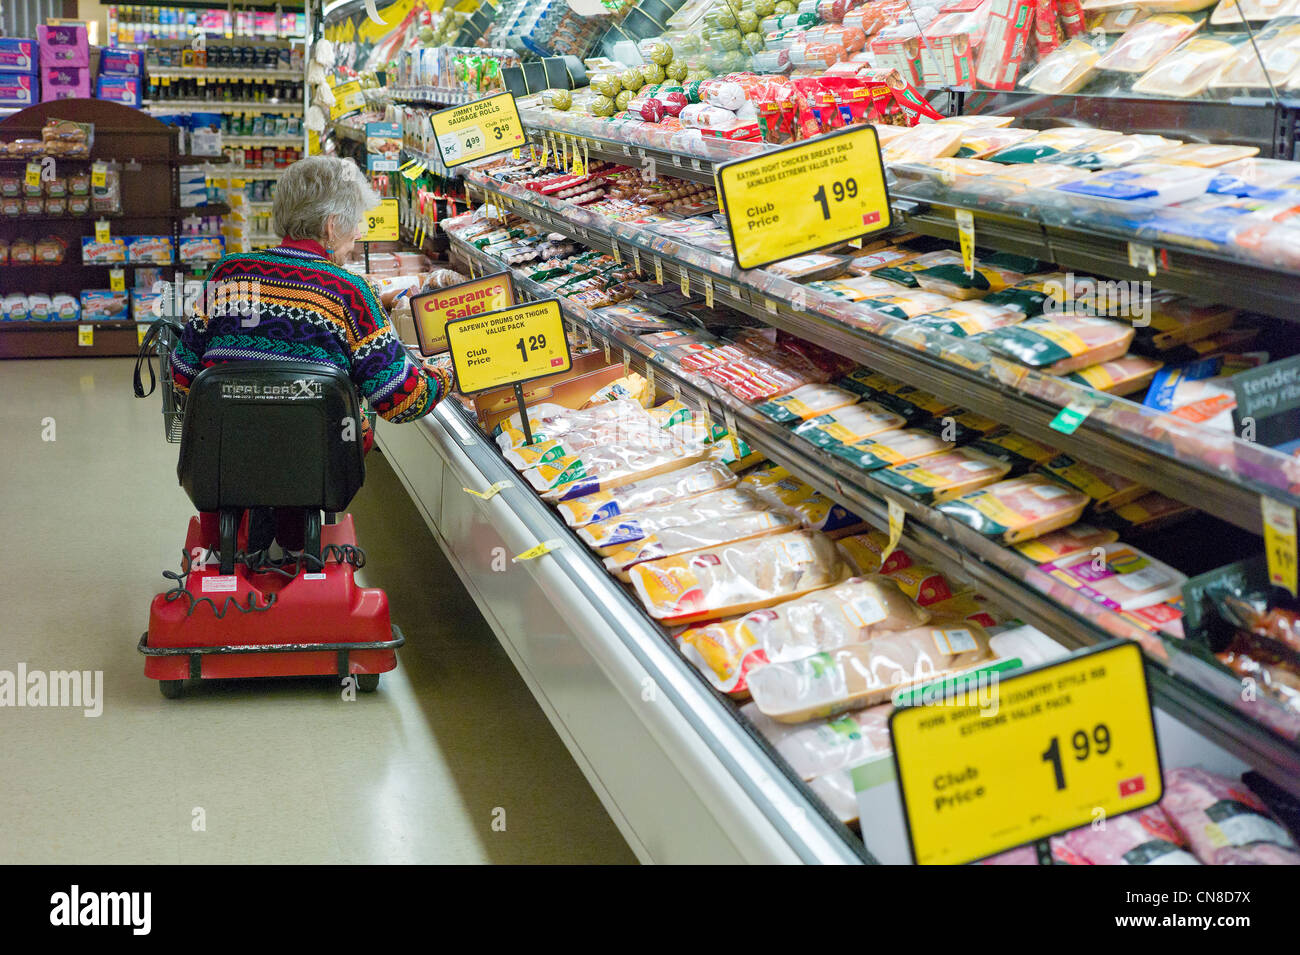 Older woman shopping from her handicap cart at a Safeway grocery store, Salida, Colorado, USA - Stock Image